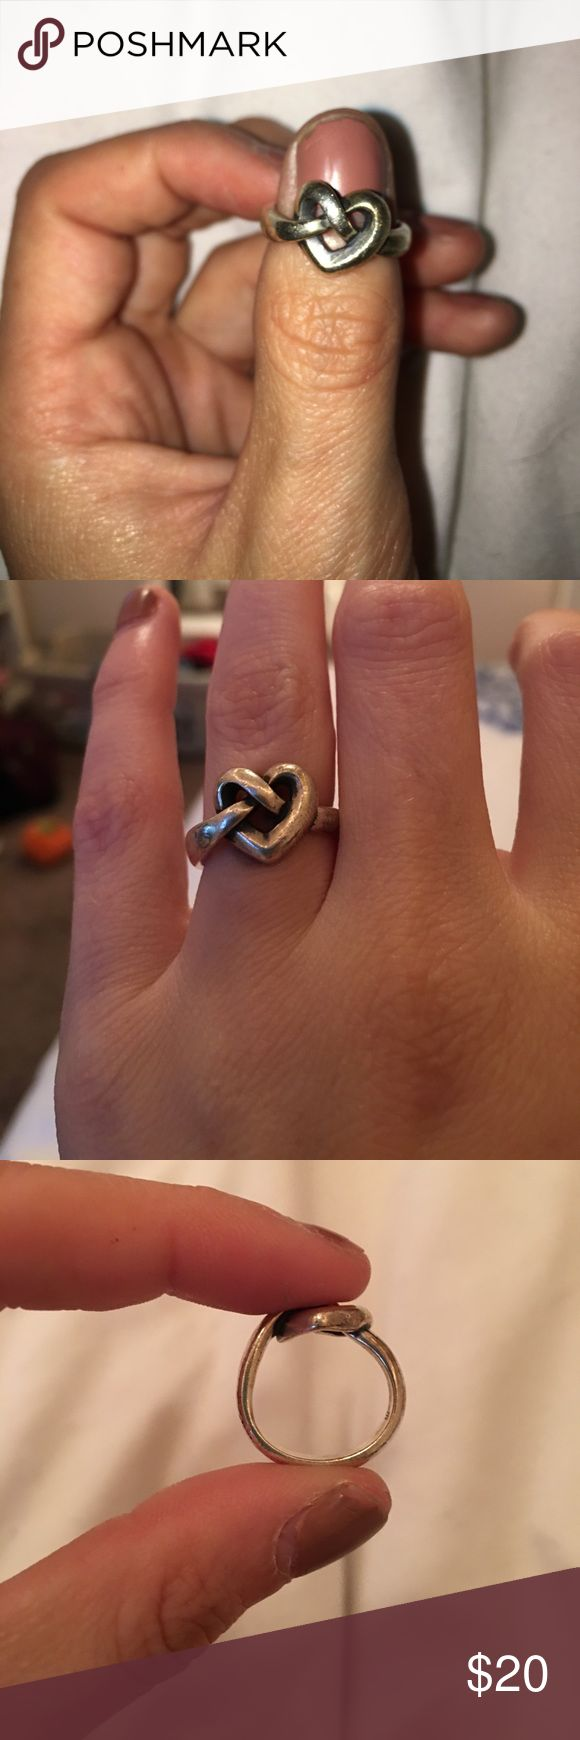 james avery rings james avery wedding bands Heart Knot James Avery ring Worn but still in good condition will be cleaned and